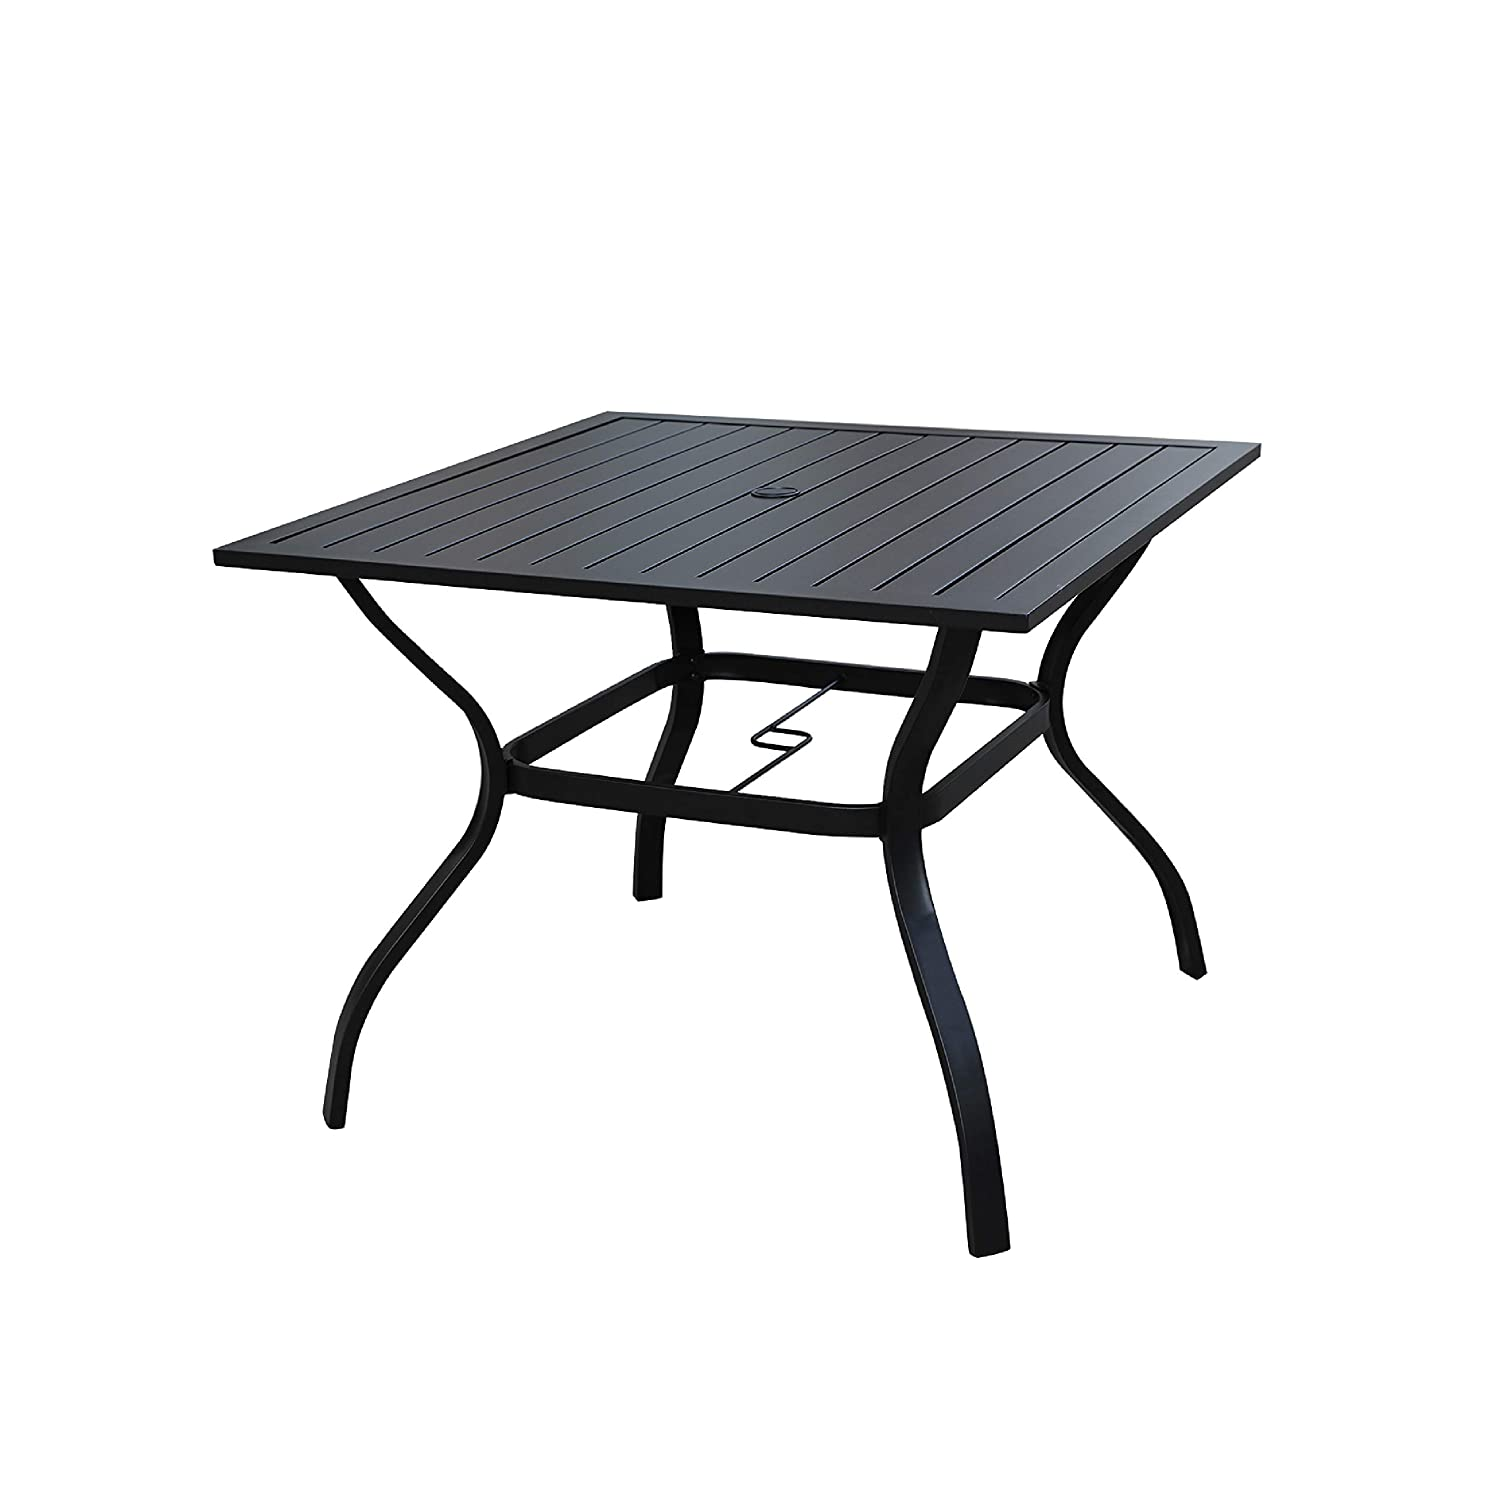 LOKATSE HOME Outdoor Patio Dining Table Square Heavy Duty Furniture with Umbrella Hole, Black